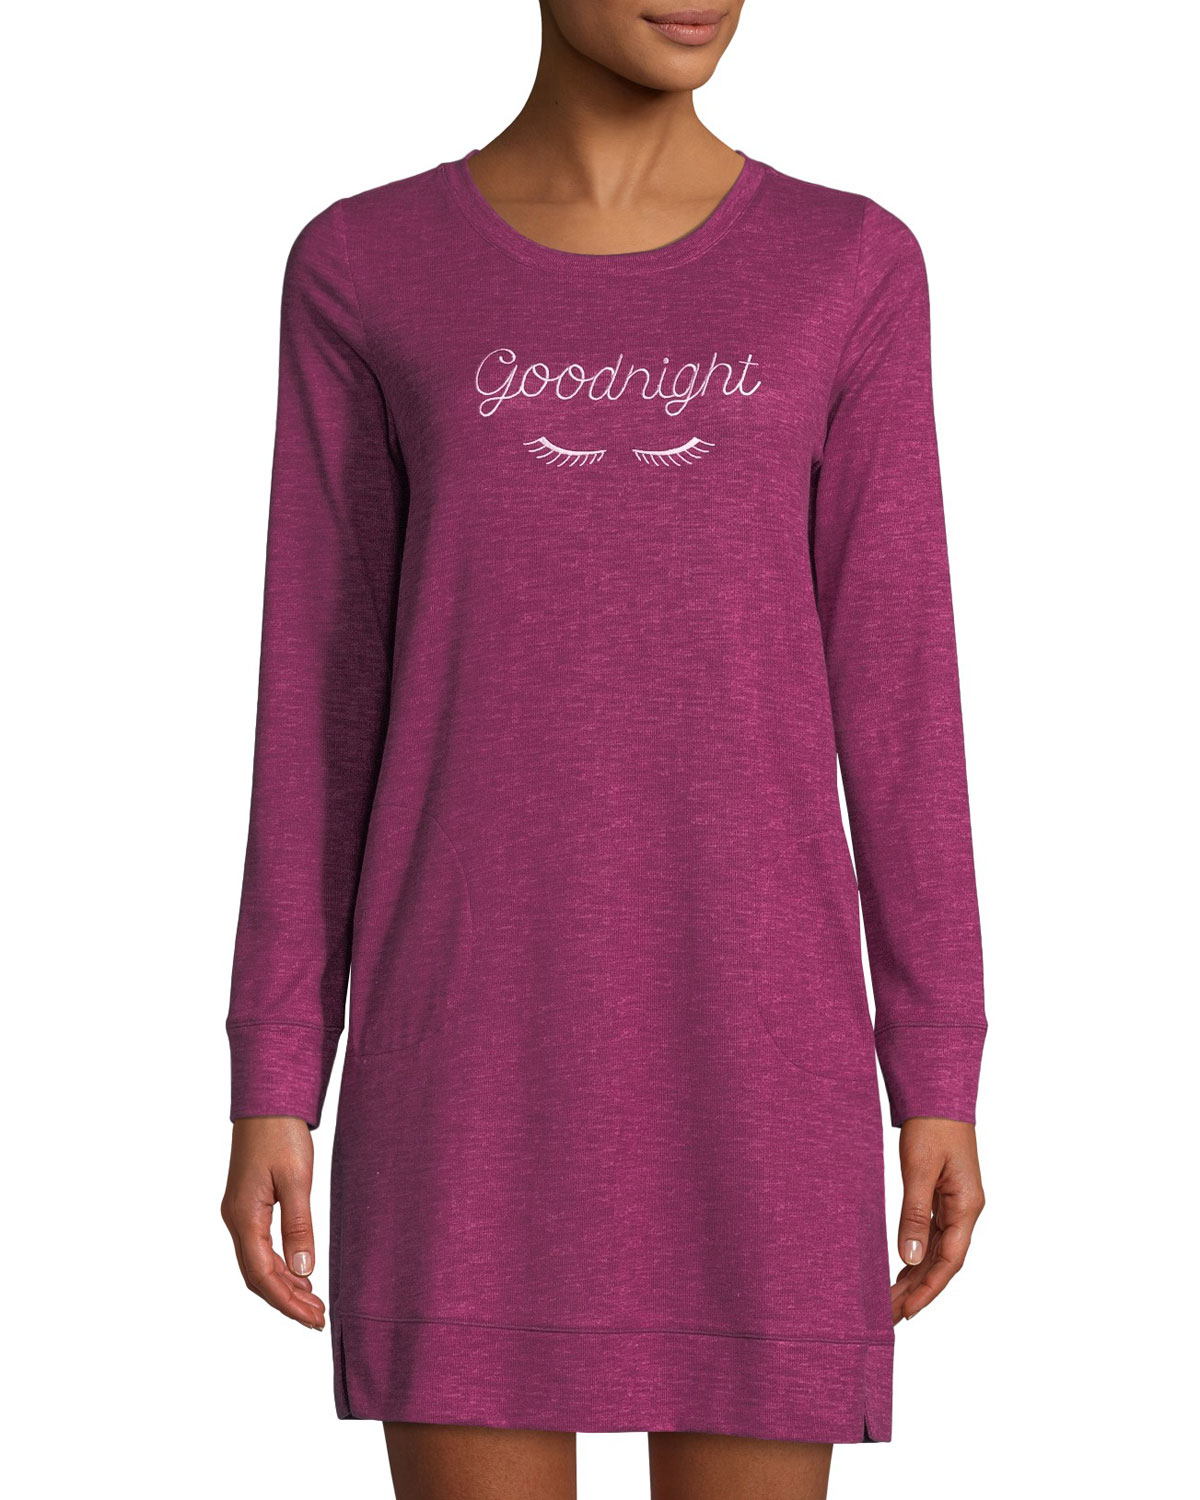 goodnight cozy knit sleepshirt